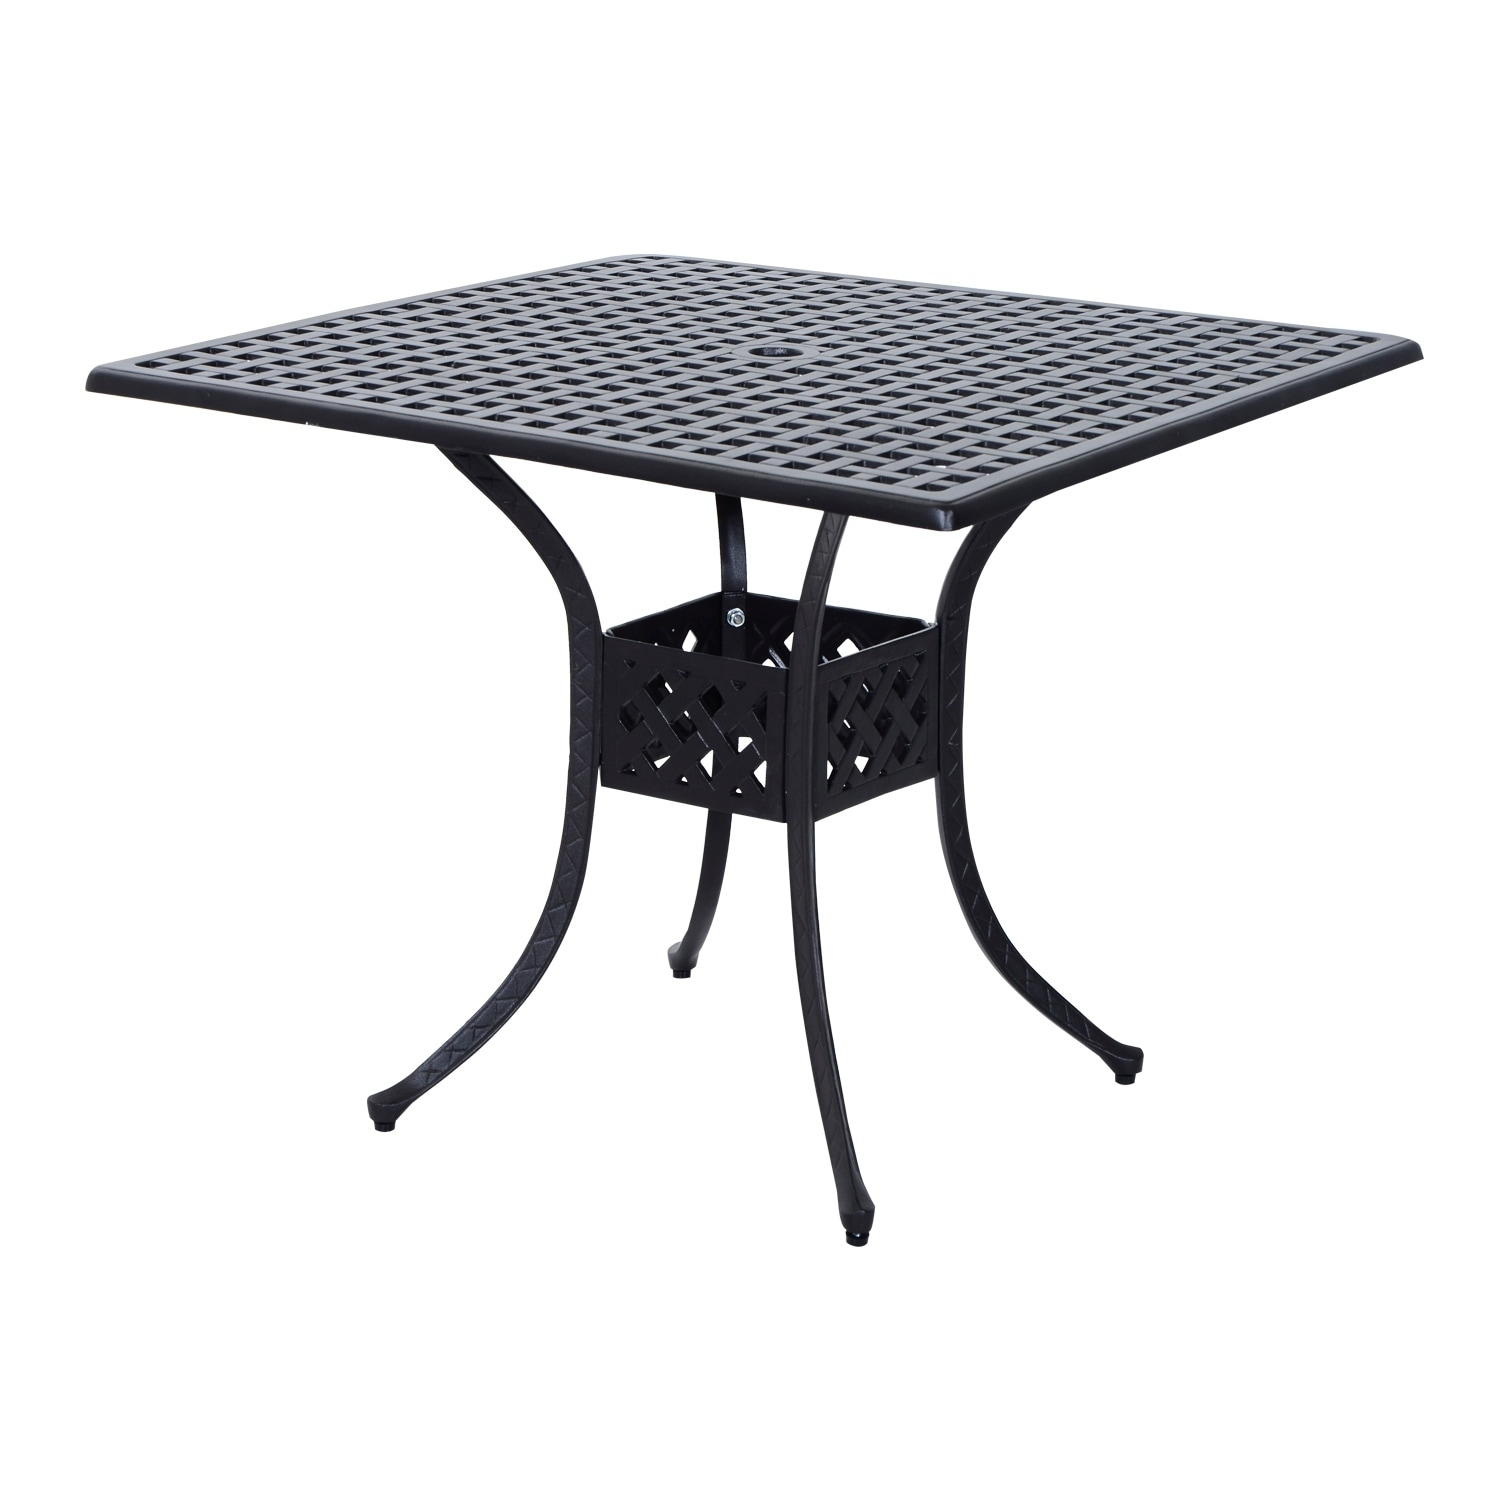 Outsunny Square Cast Aluminum Outdoor Dining Table - Blac...